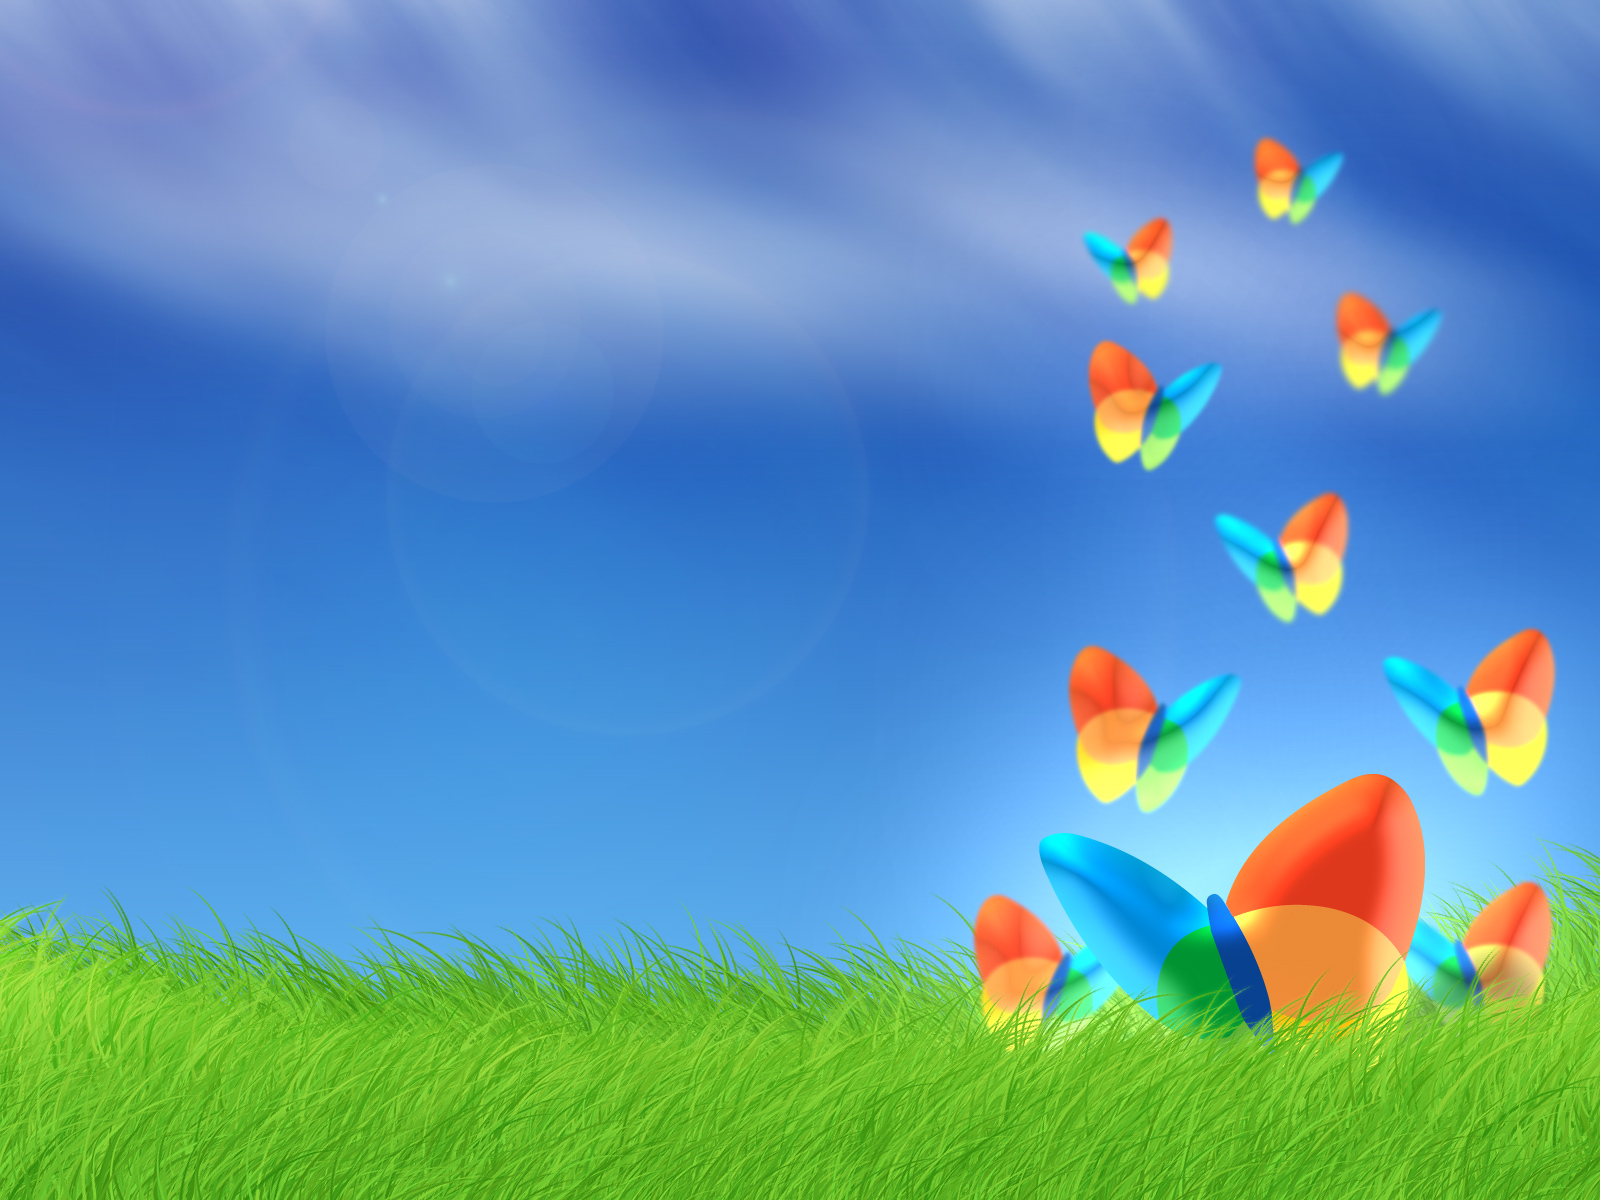 Windows Vista Wallpapers - Free Screensavers, Themes, Backgrounds ...